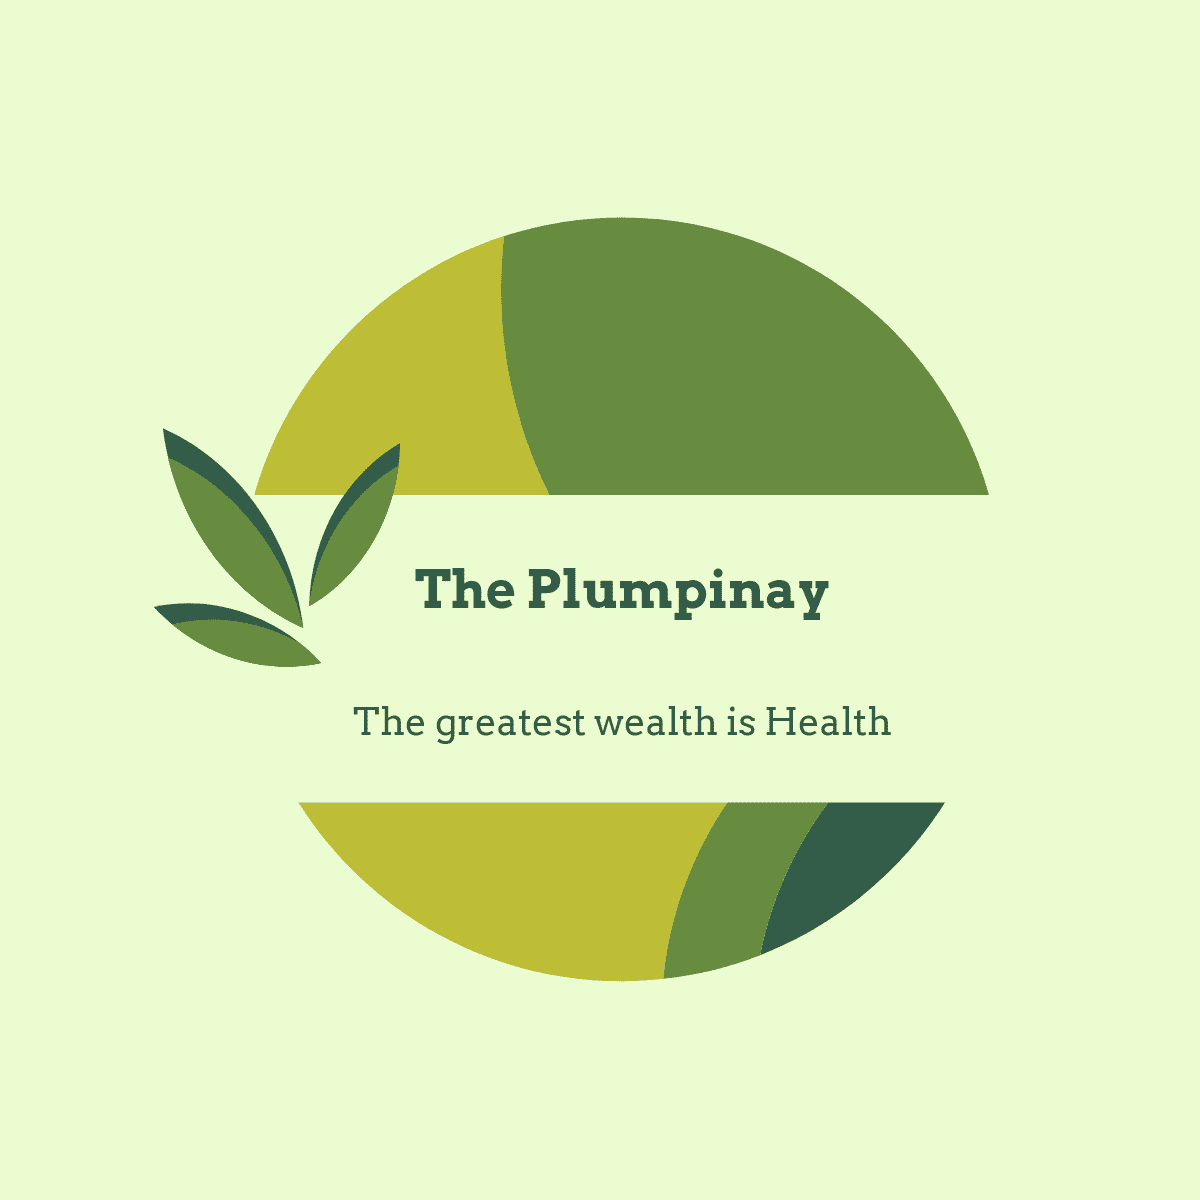 The Plumpinay